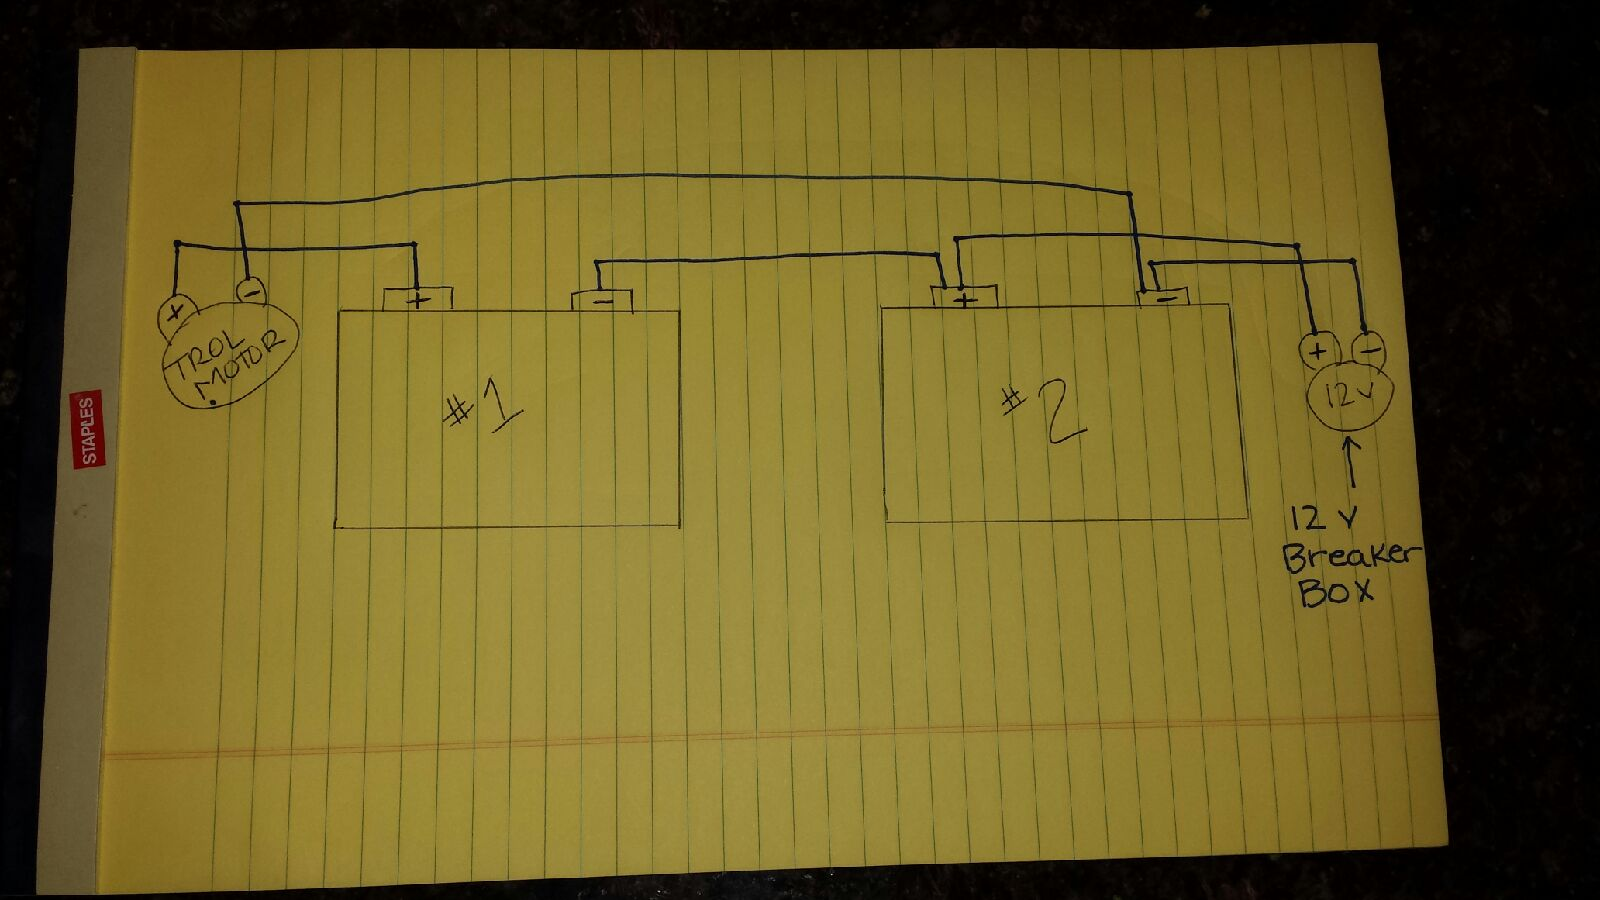 12v 24v diagram how to wire 24 volt trolling motor and 12 volt power pole on 2 12 24 volt wiring diagram for trolling motor at gsmportal.co